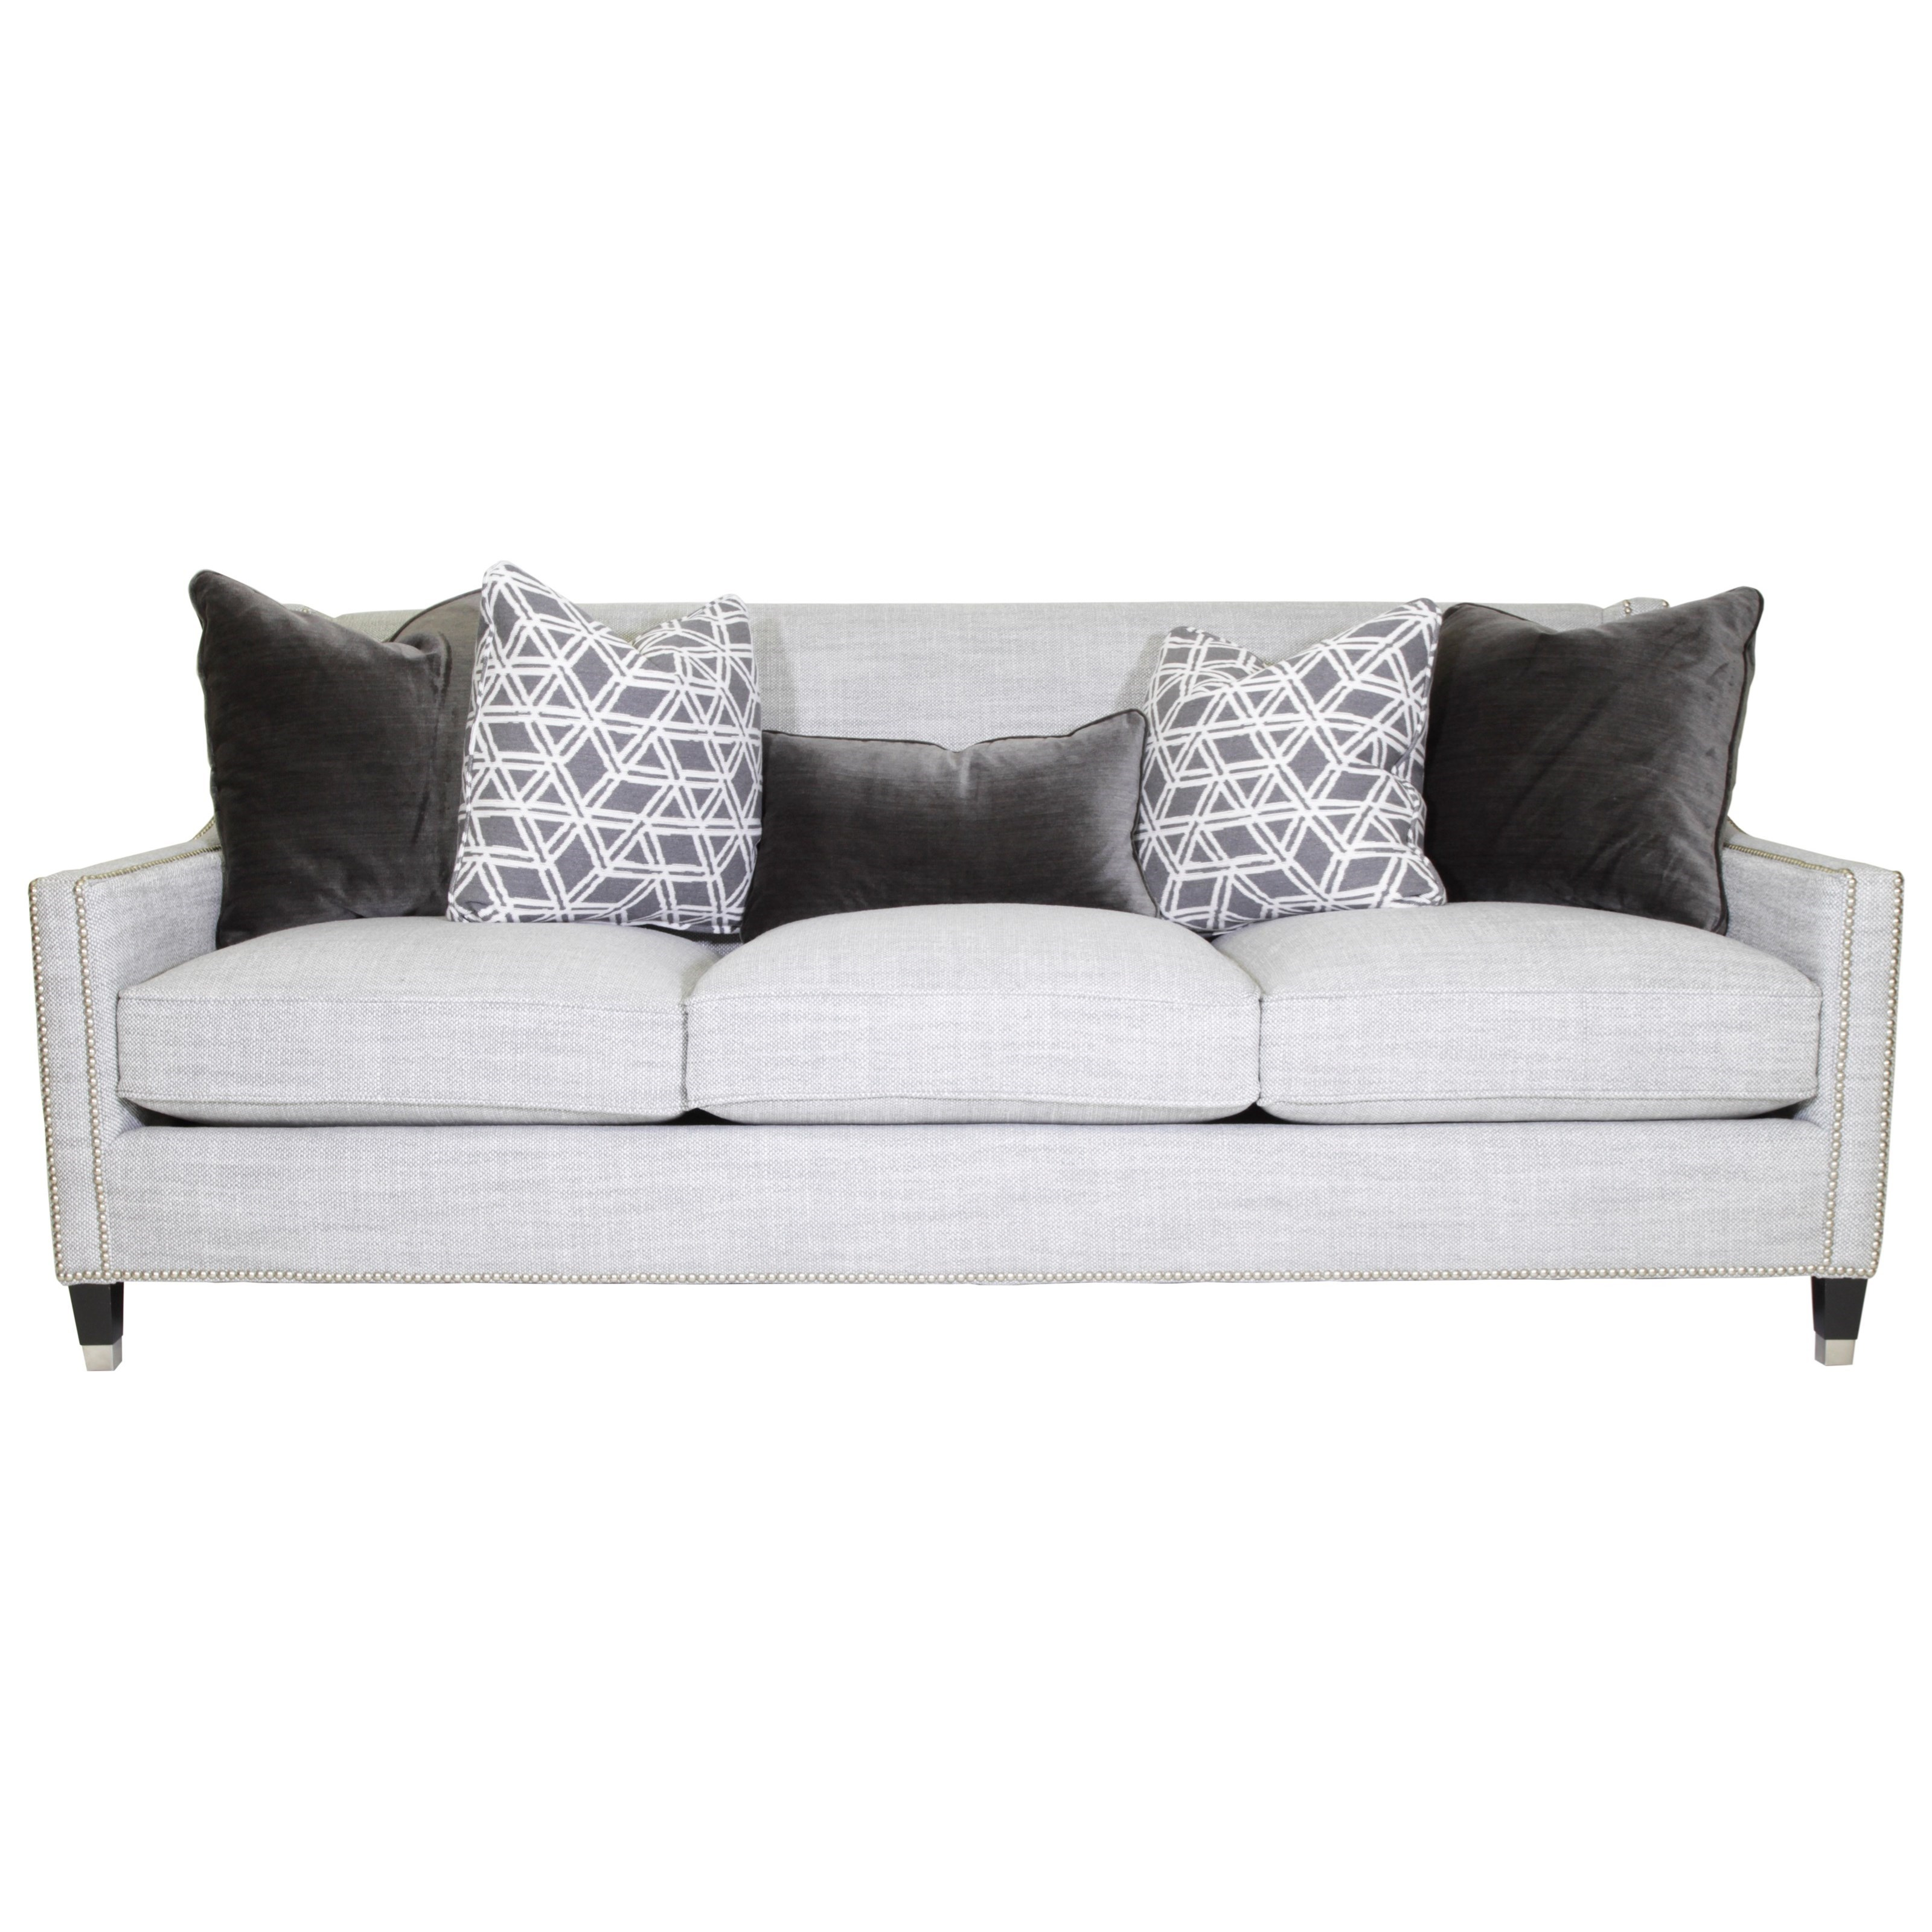 Terrific Bernhardt Interiors Palisades Transitional Sofa With Forskolin Free Trial Chair Design Images Forskolin Free Trialorg